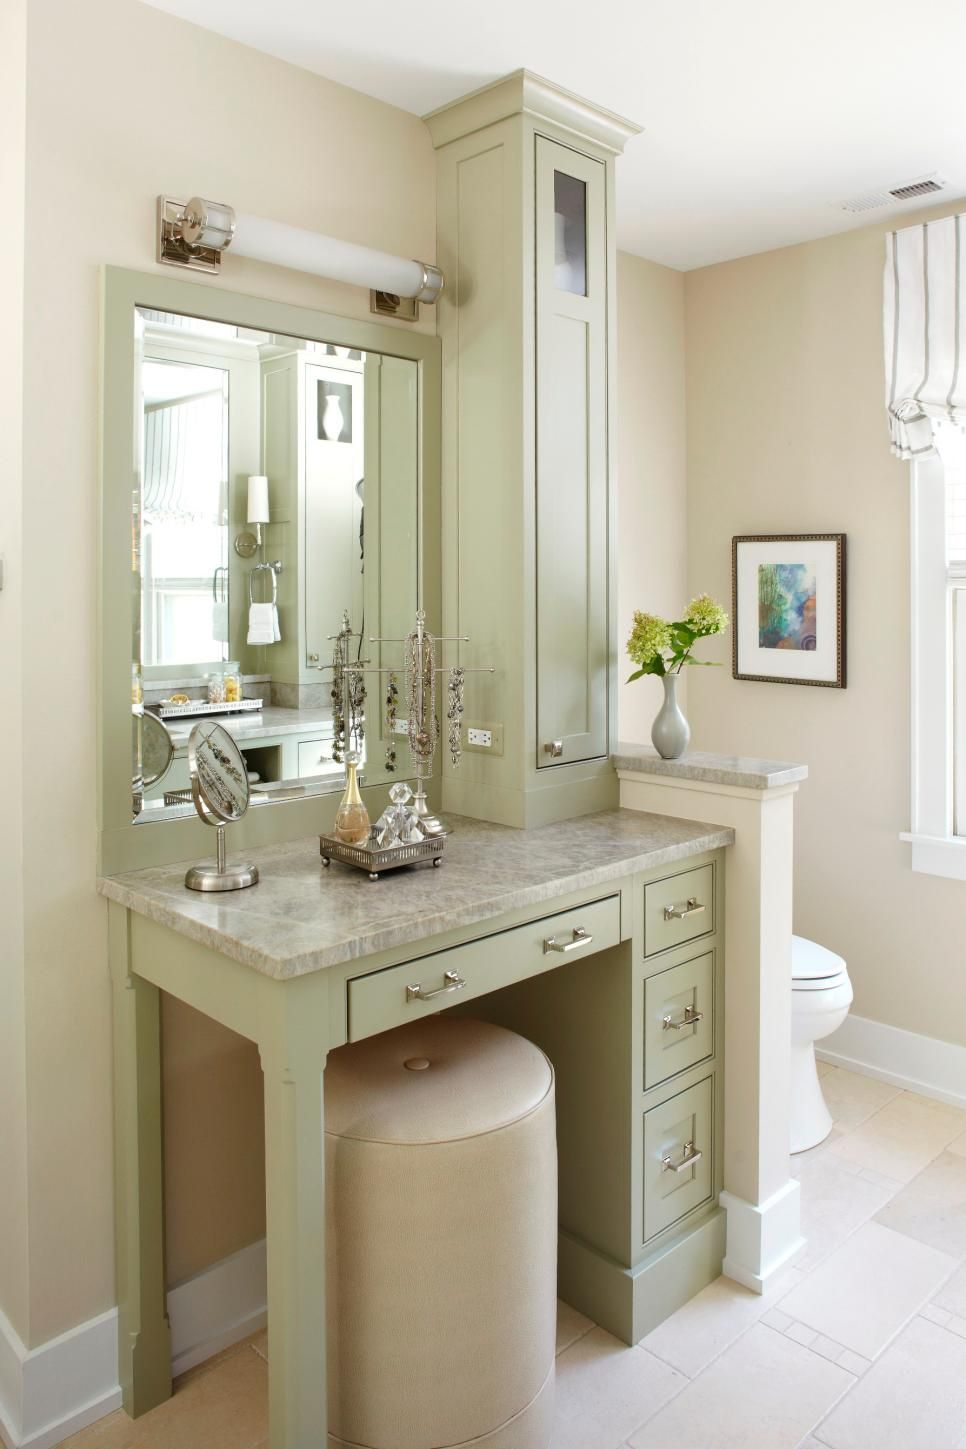 Beveled Mirror Meaning This Bathroom Vanity Is The Perfect Space For Getting